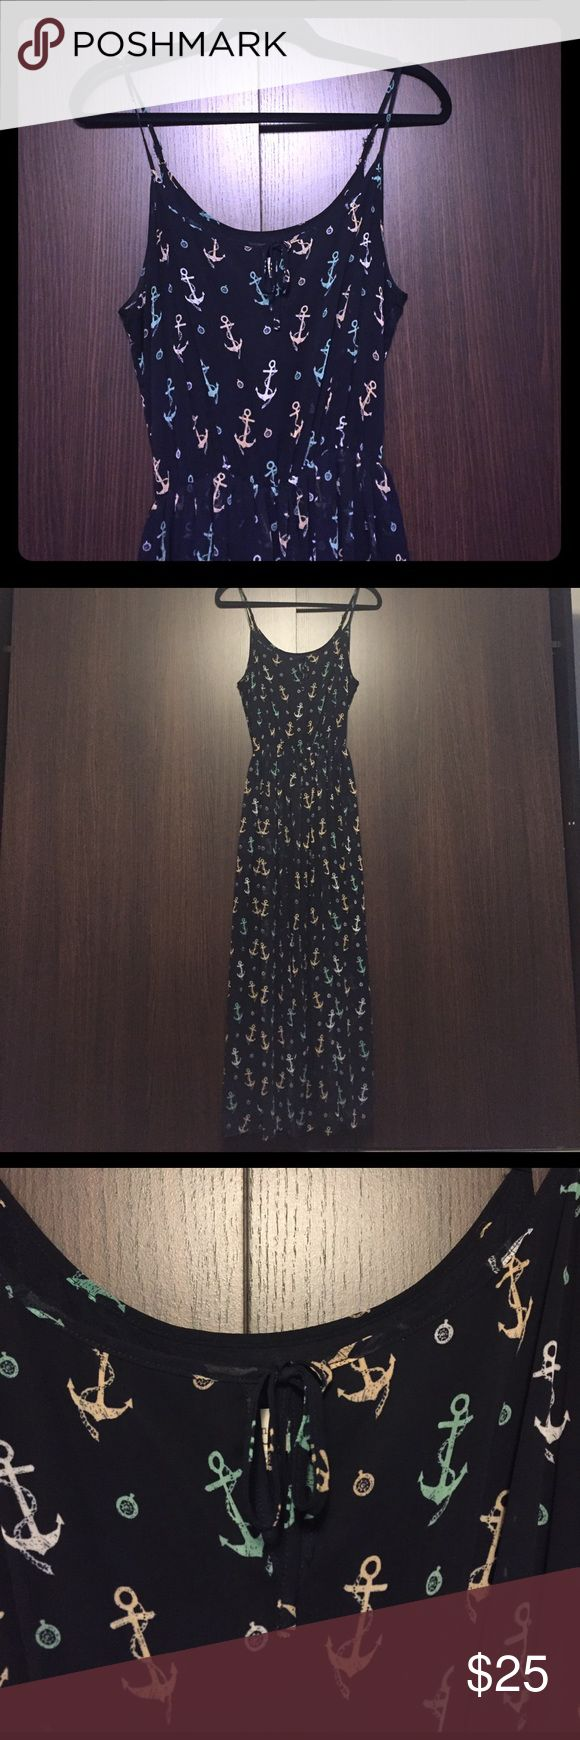 Nautical maxi dress Super cute maxi. Lining goes all the way down. Navy blue with colored anchors. No flaws. Cinches at the waist. Ties in the front. Straps are adjustable. Maison Jules Dresses Maxi